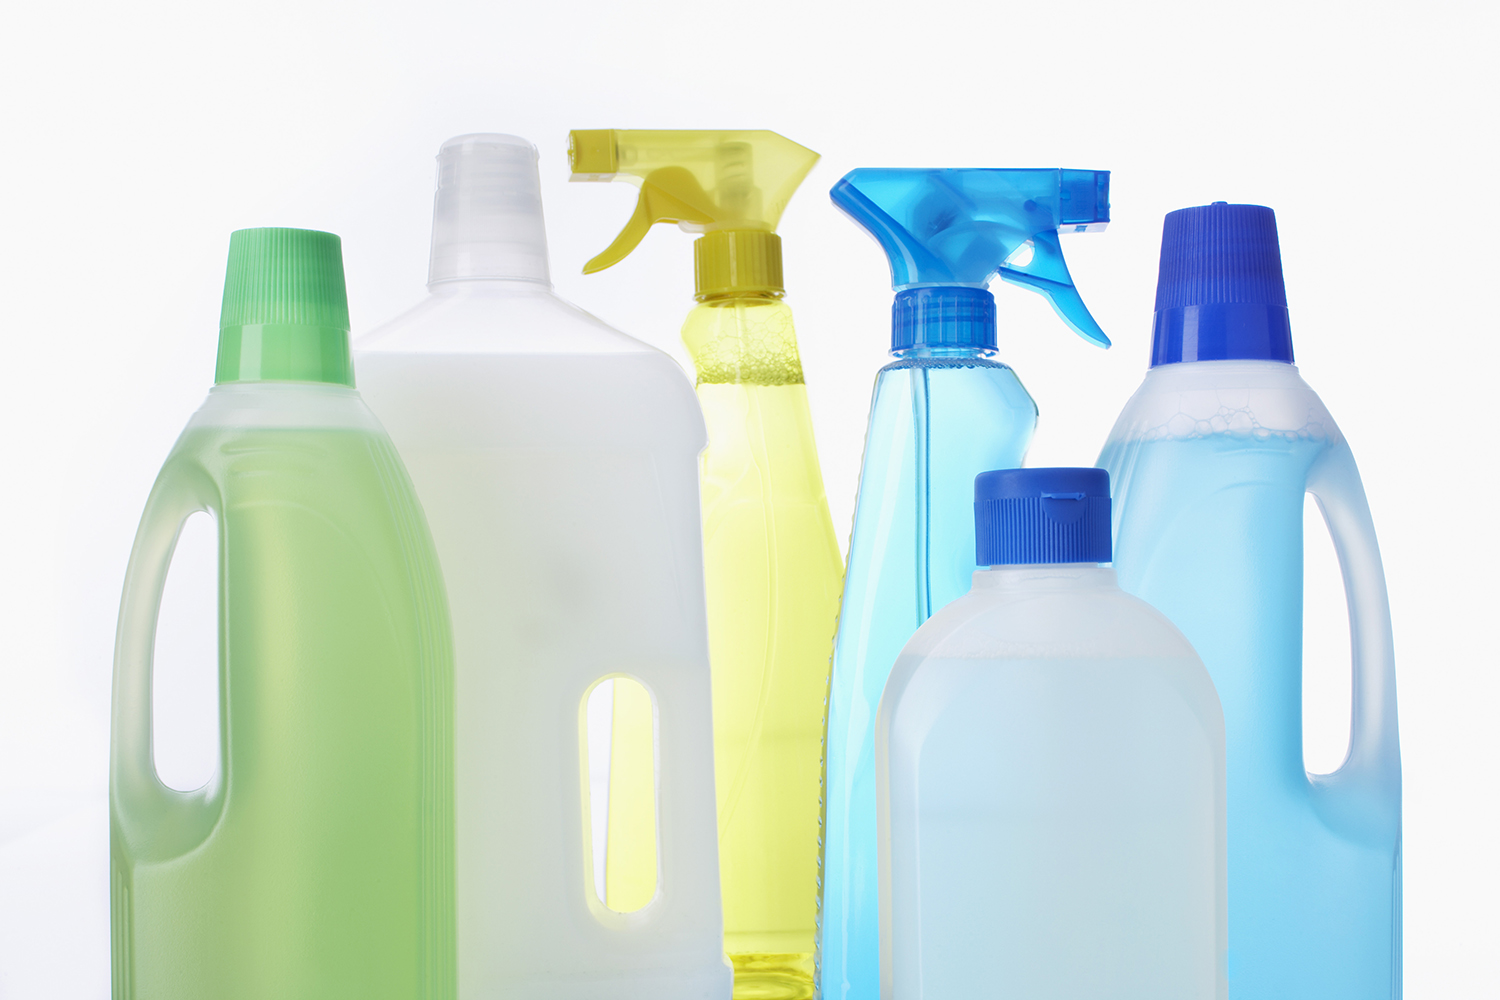 Generic empty household cleaner bottles